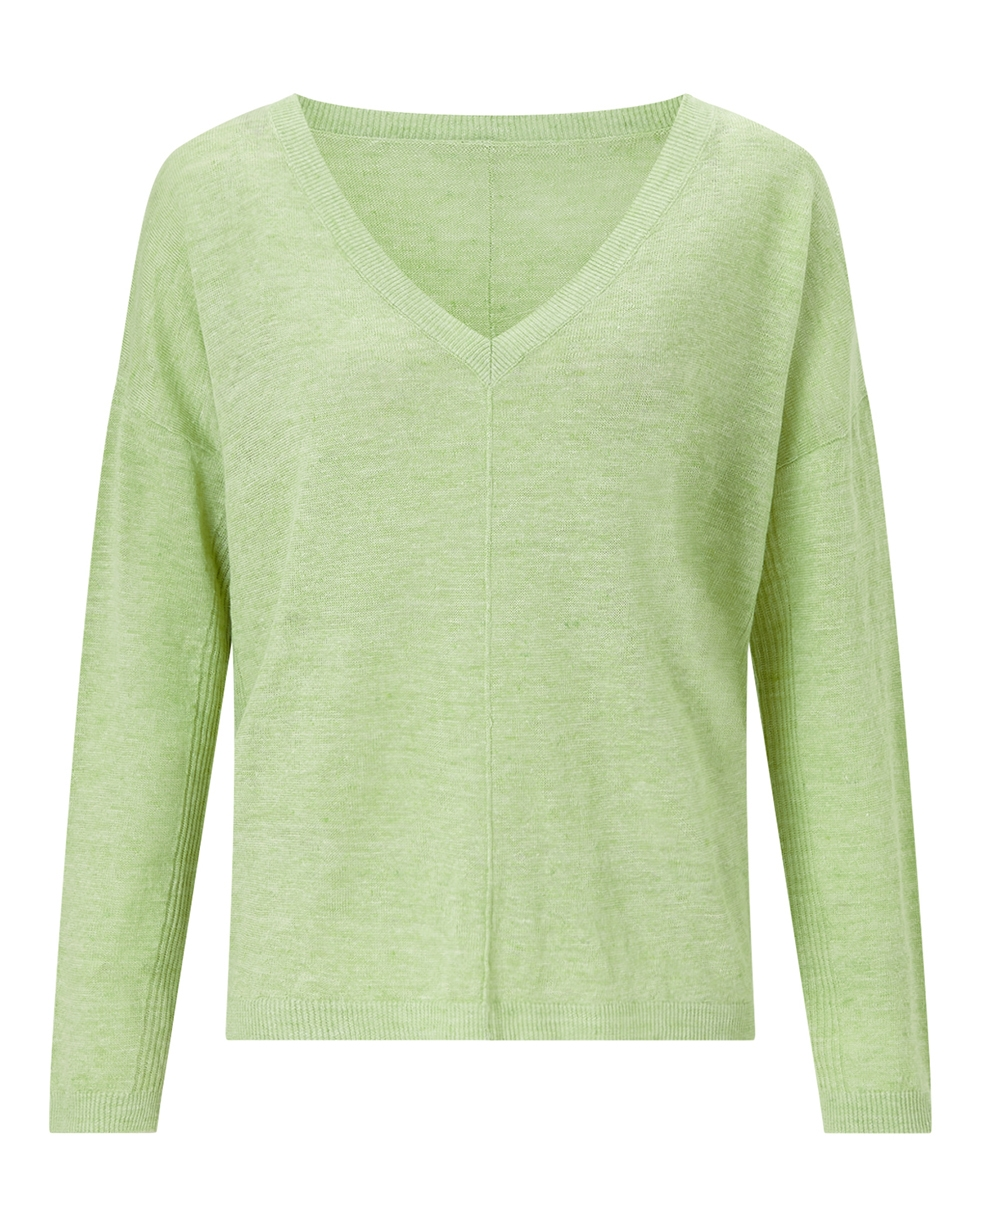 60c0c62db1 Jigsaw Knitwear - Womens - Harvey Nichols